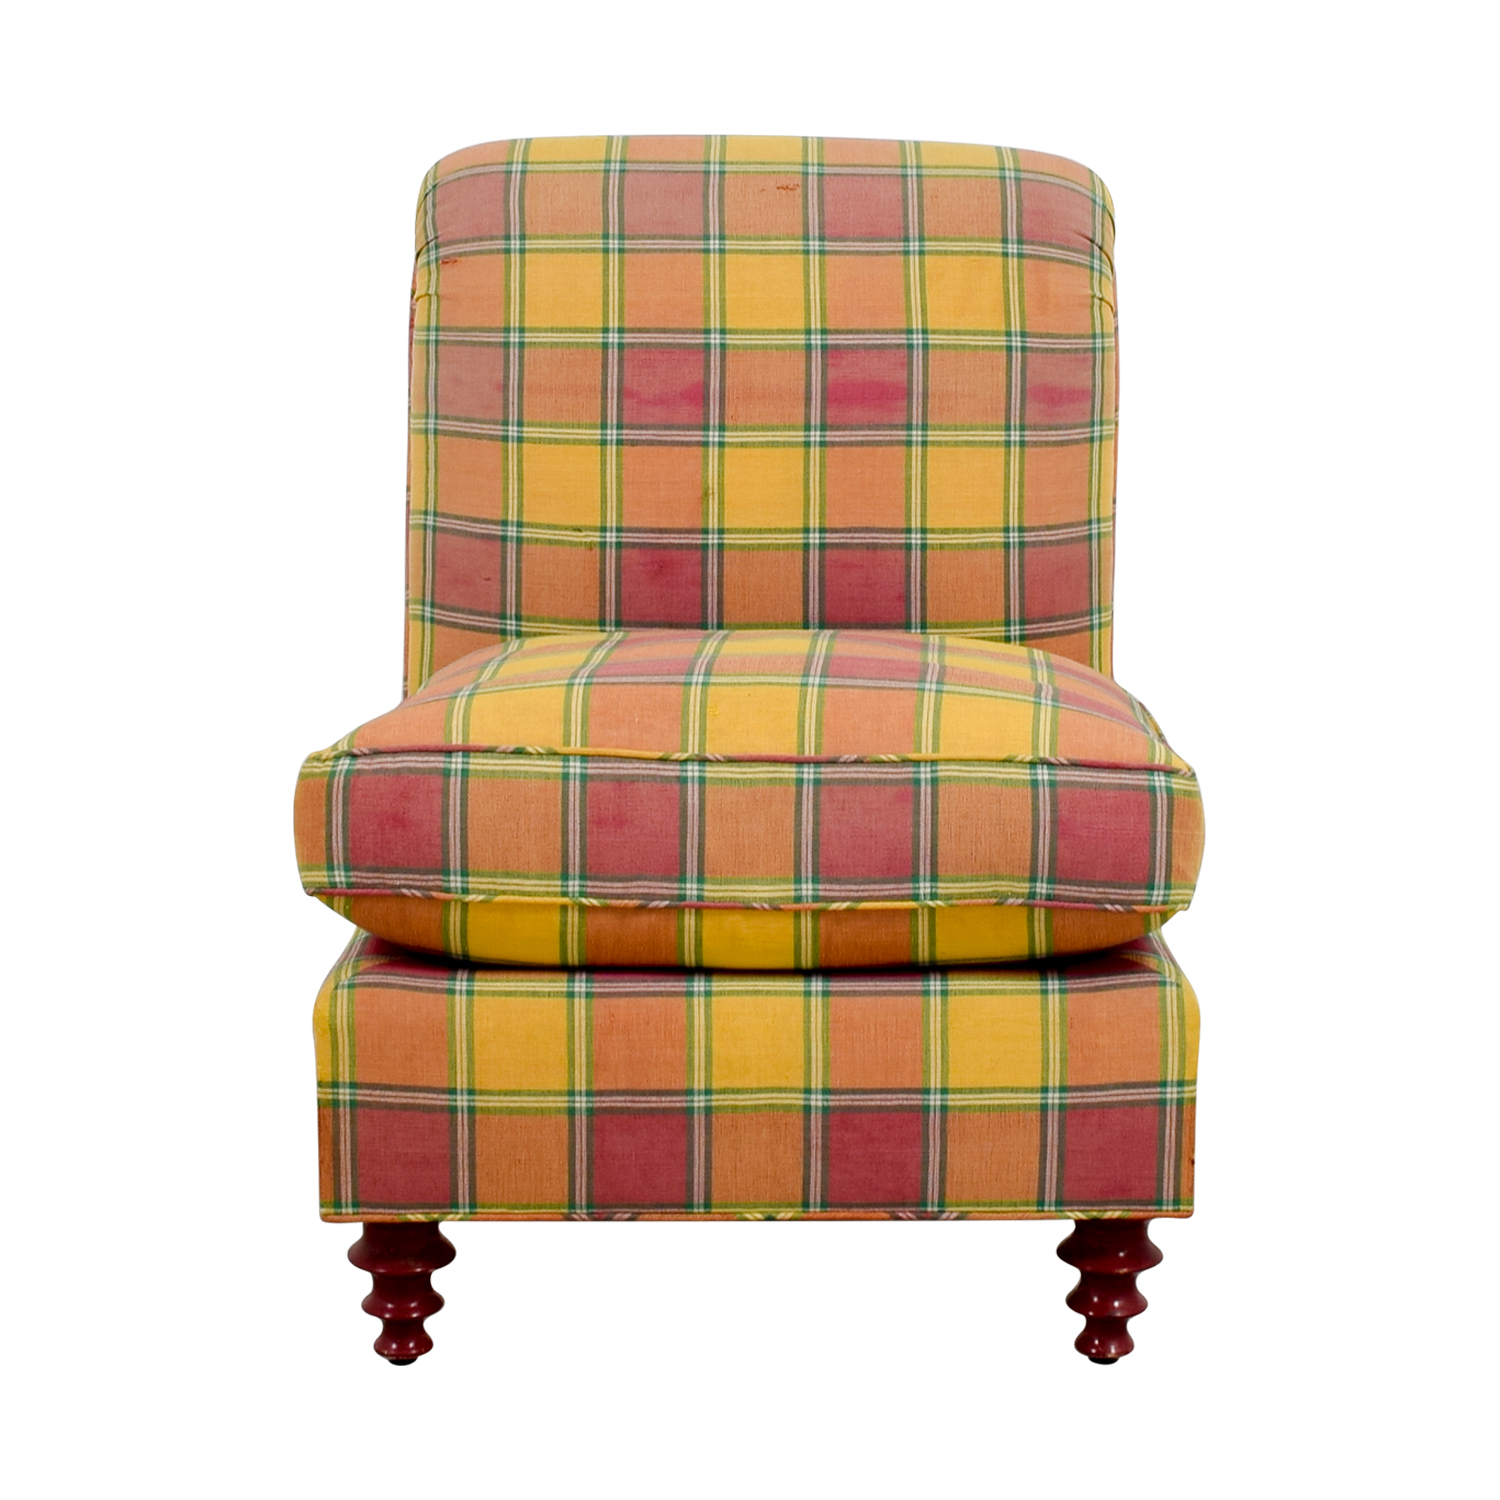 Furniture Masters Furniture Masters Red and Yellow Plaid Accent Chair used